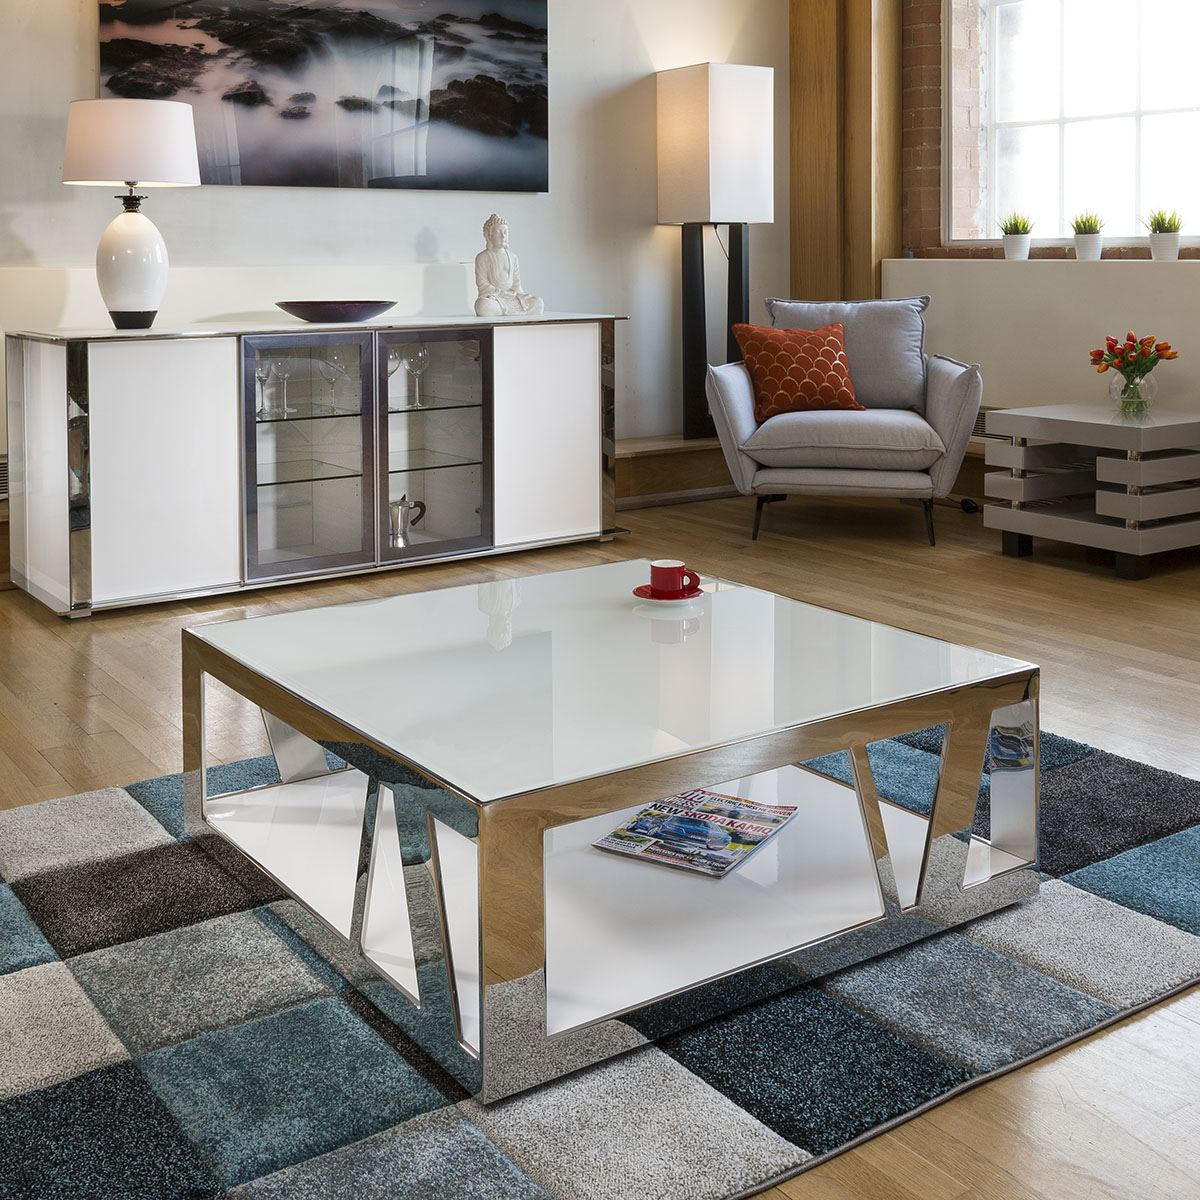 details about modern luxury large square white coffee table glass stainless steel v